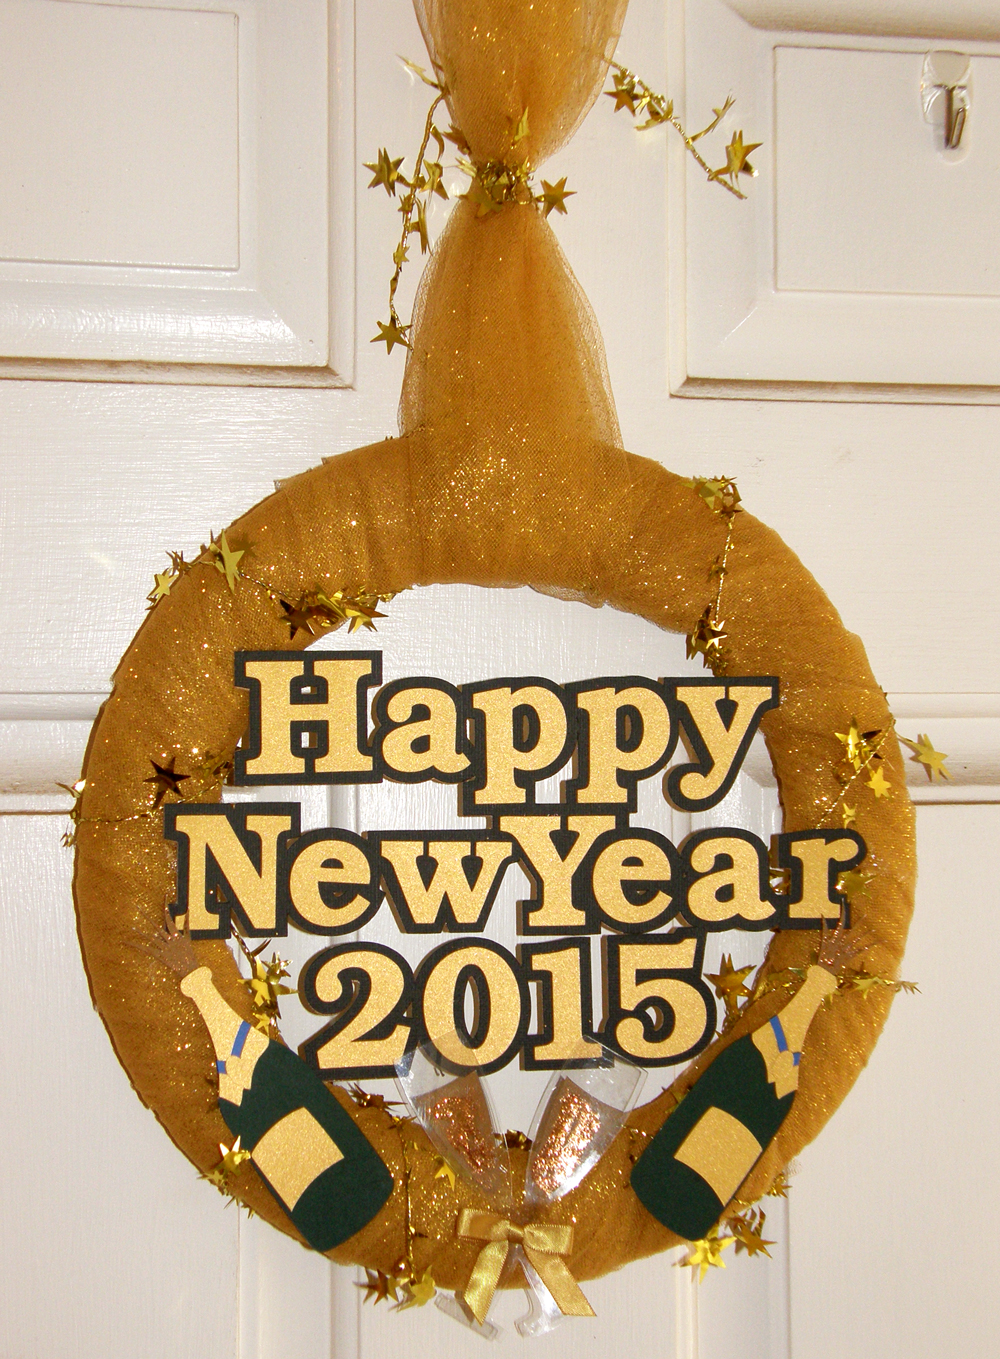 Happy New Year Wreath Decoration. Make your own wreath form from cereal boxes and your electronic die cutter.